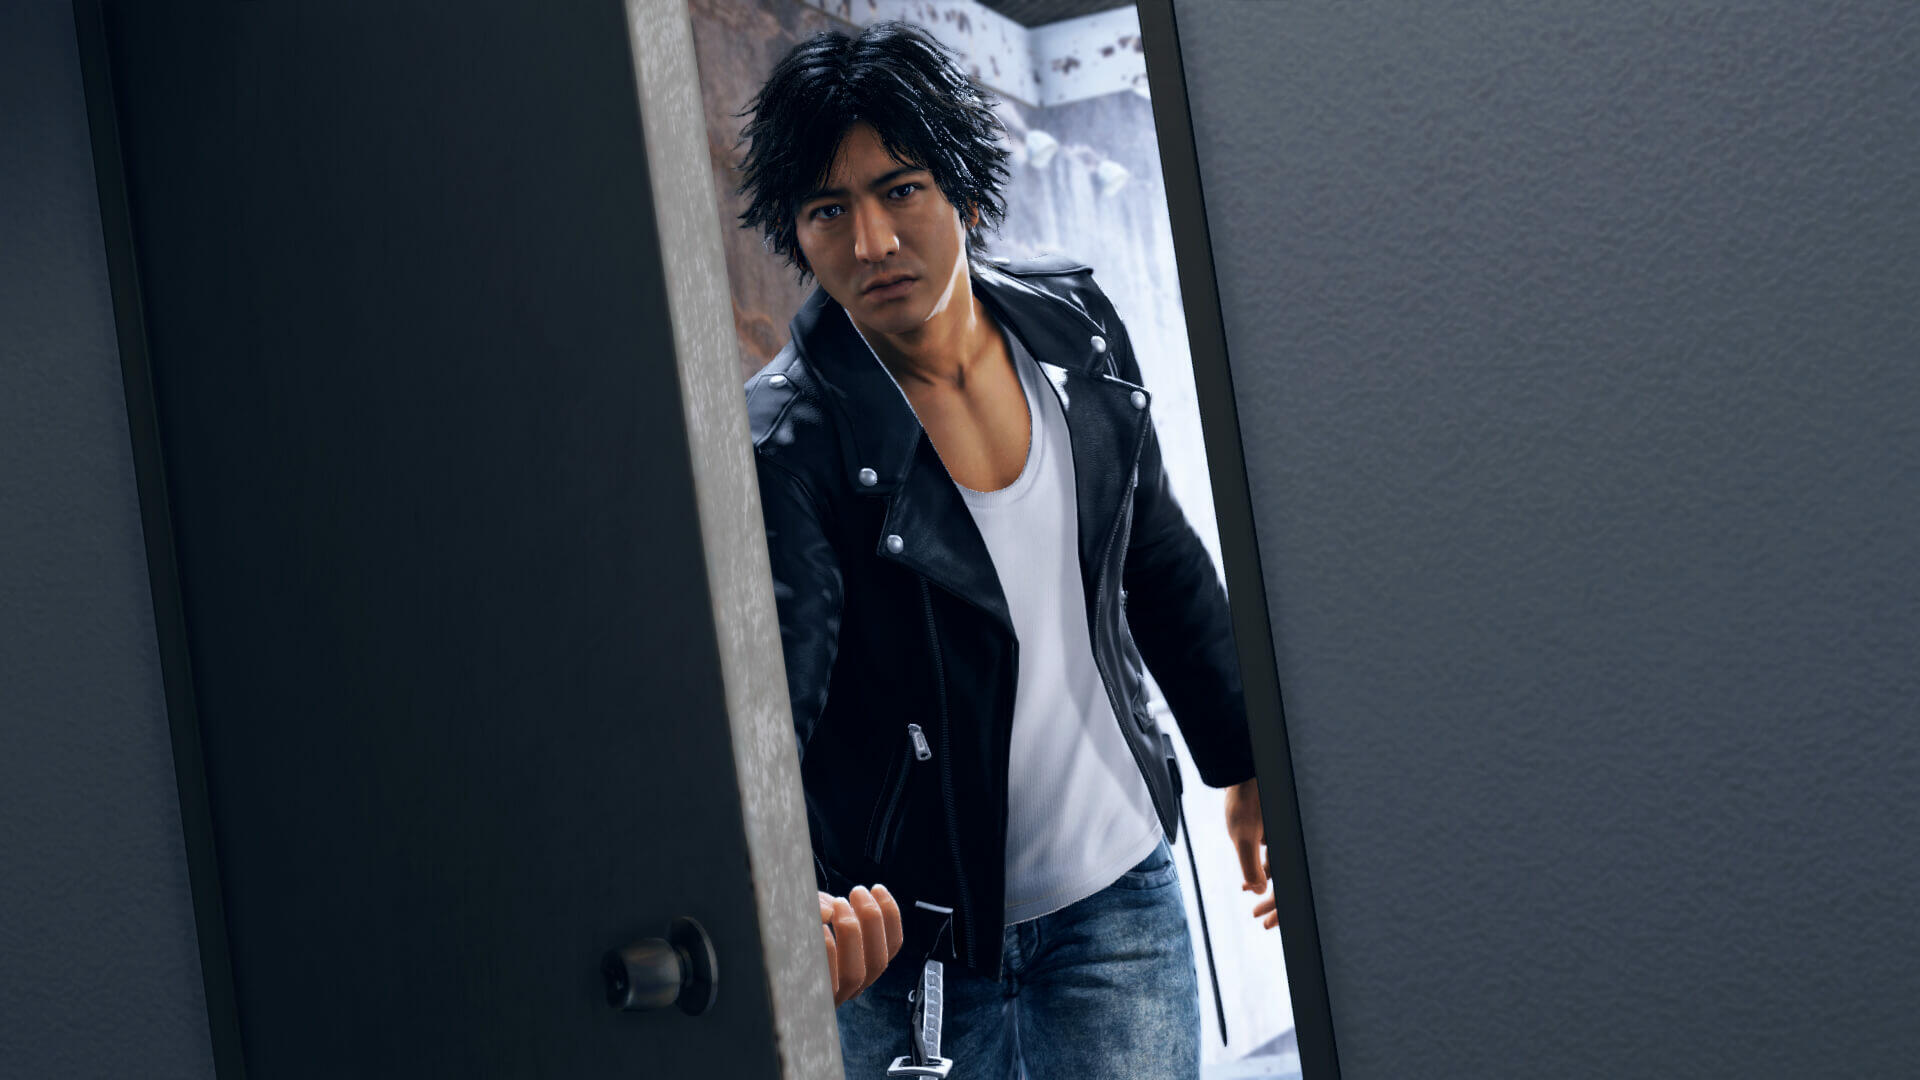 Judgment Voice Actors Who Are The Voice Cast Behind Judgment